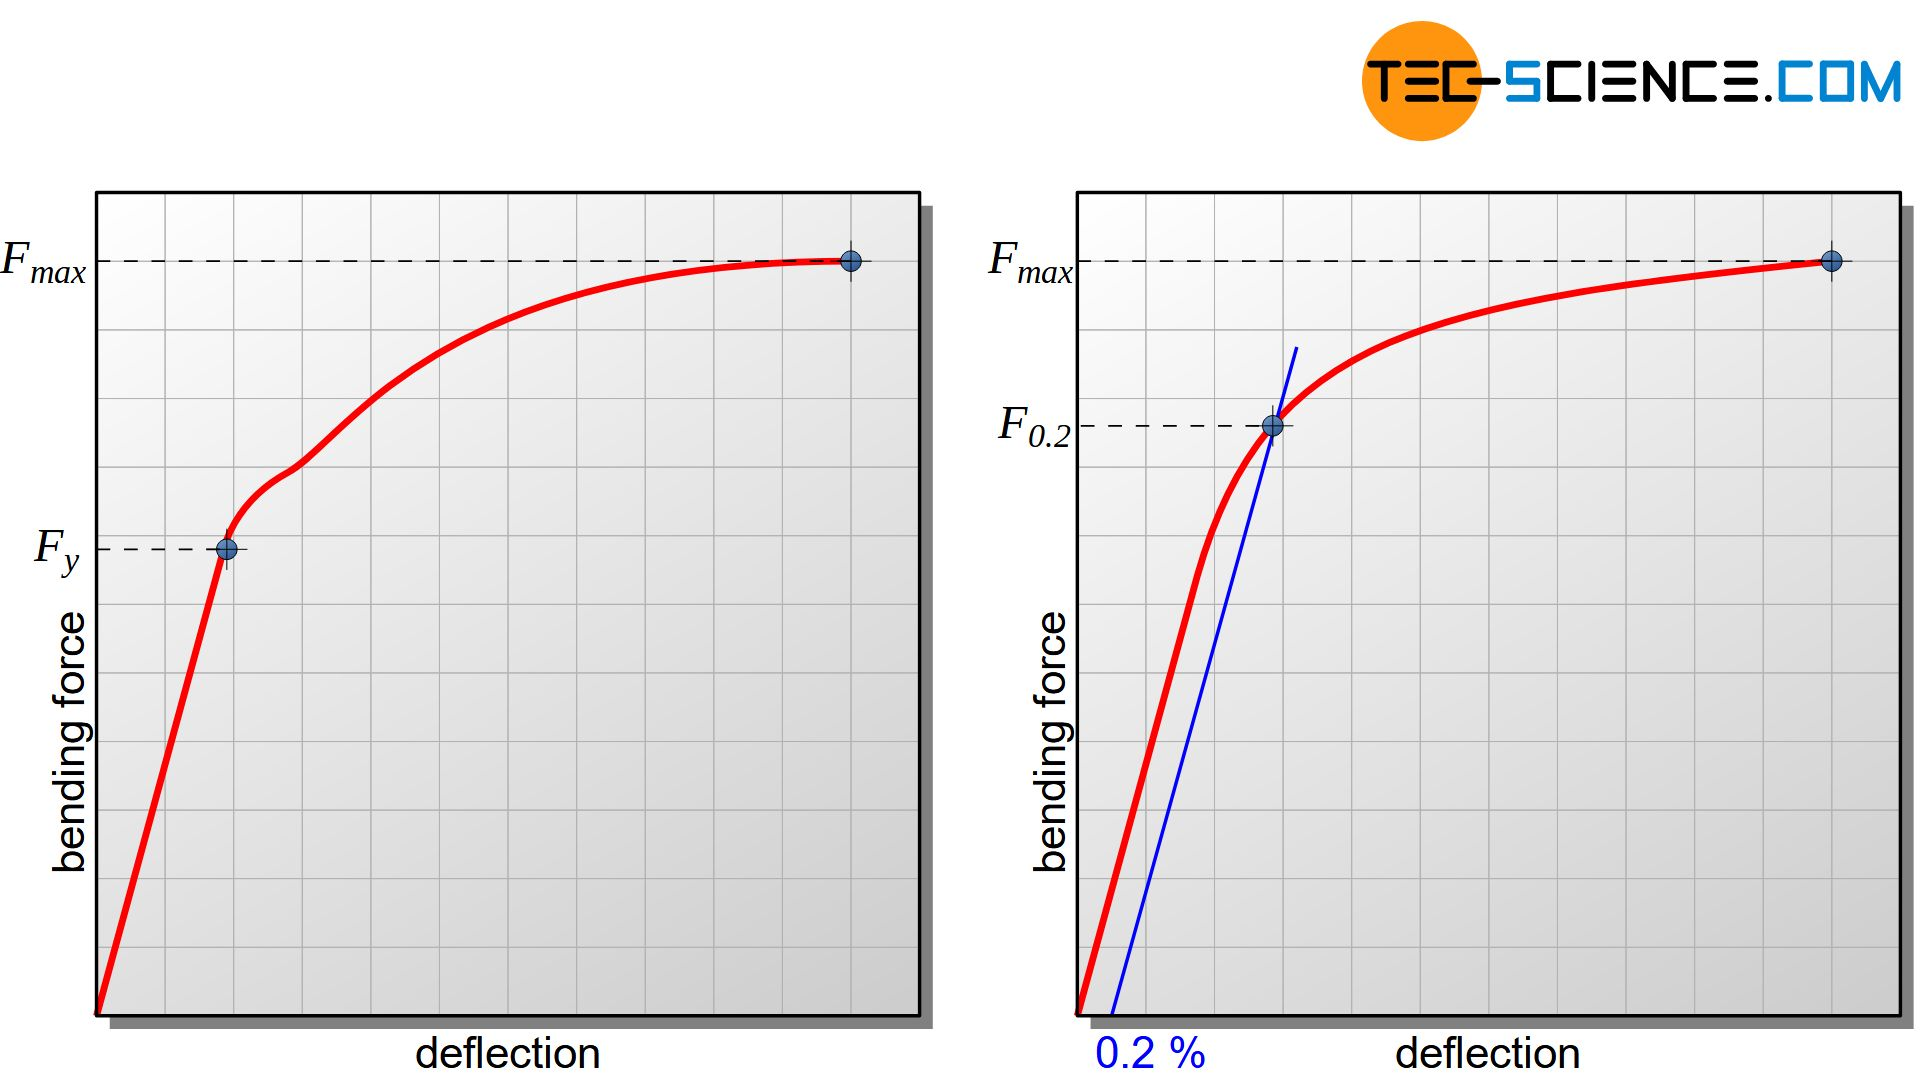 Bending force and deflection diagram (flexural yield strength)